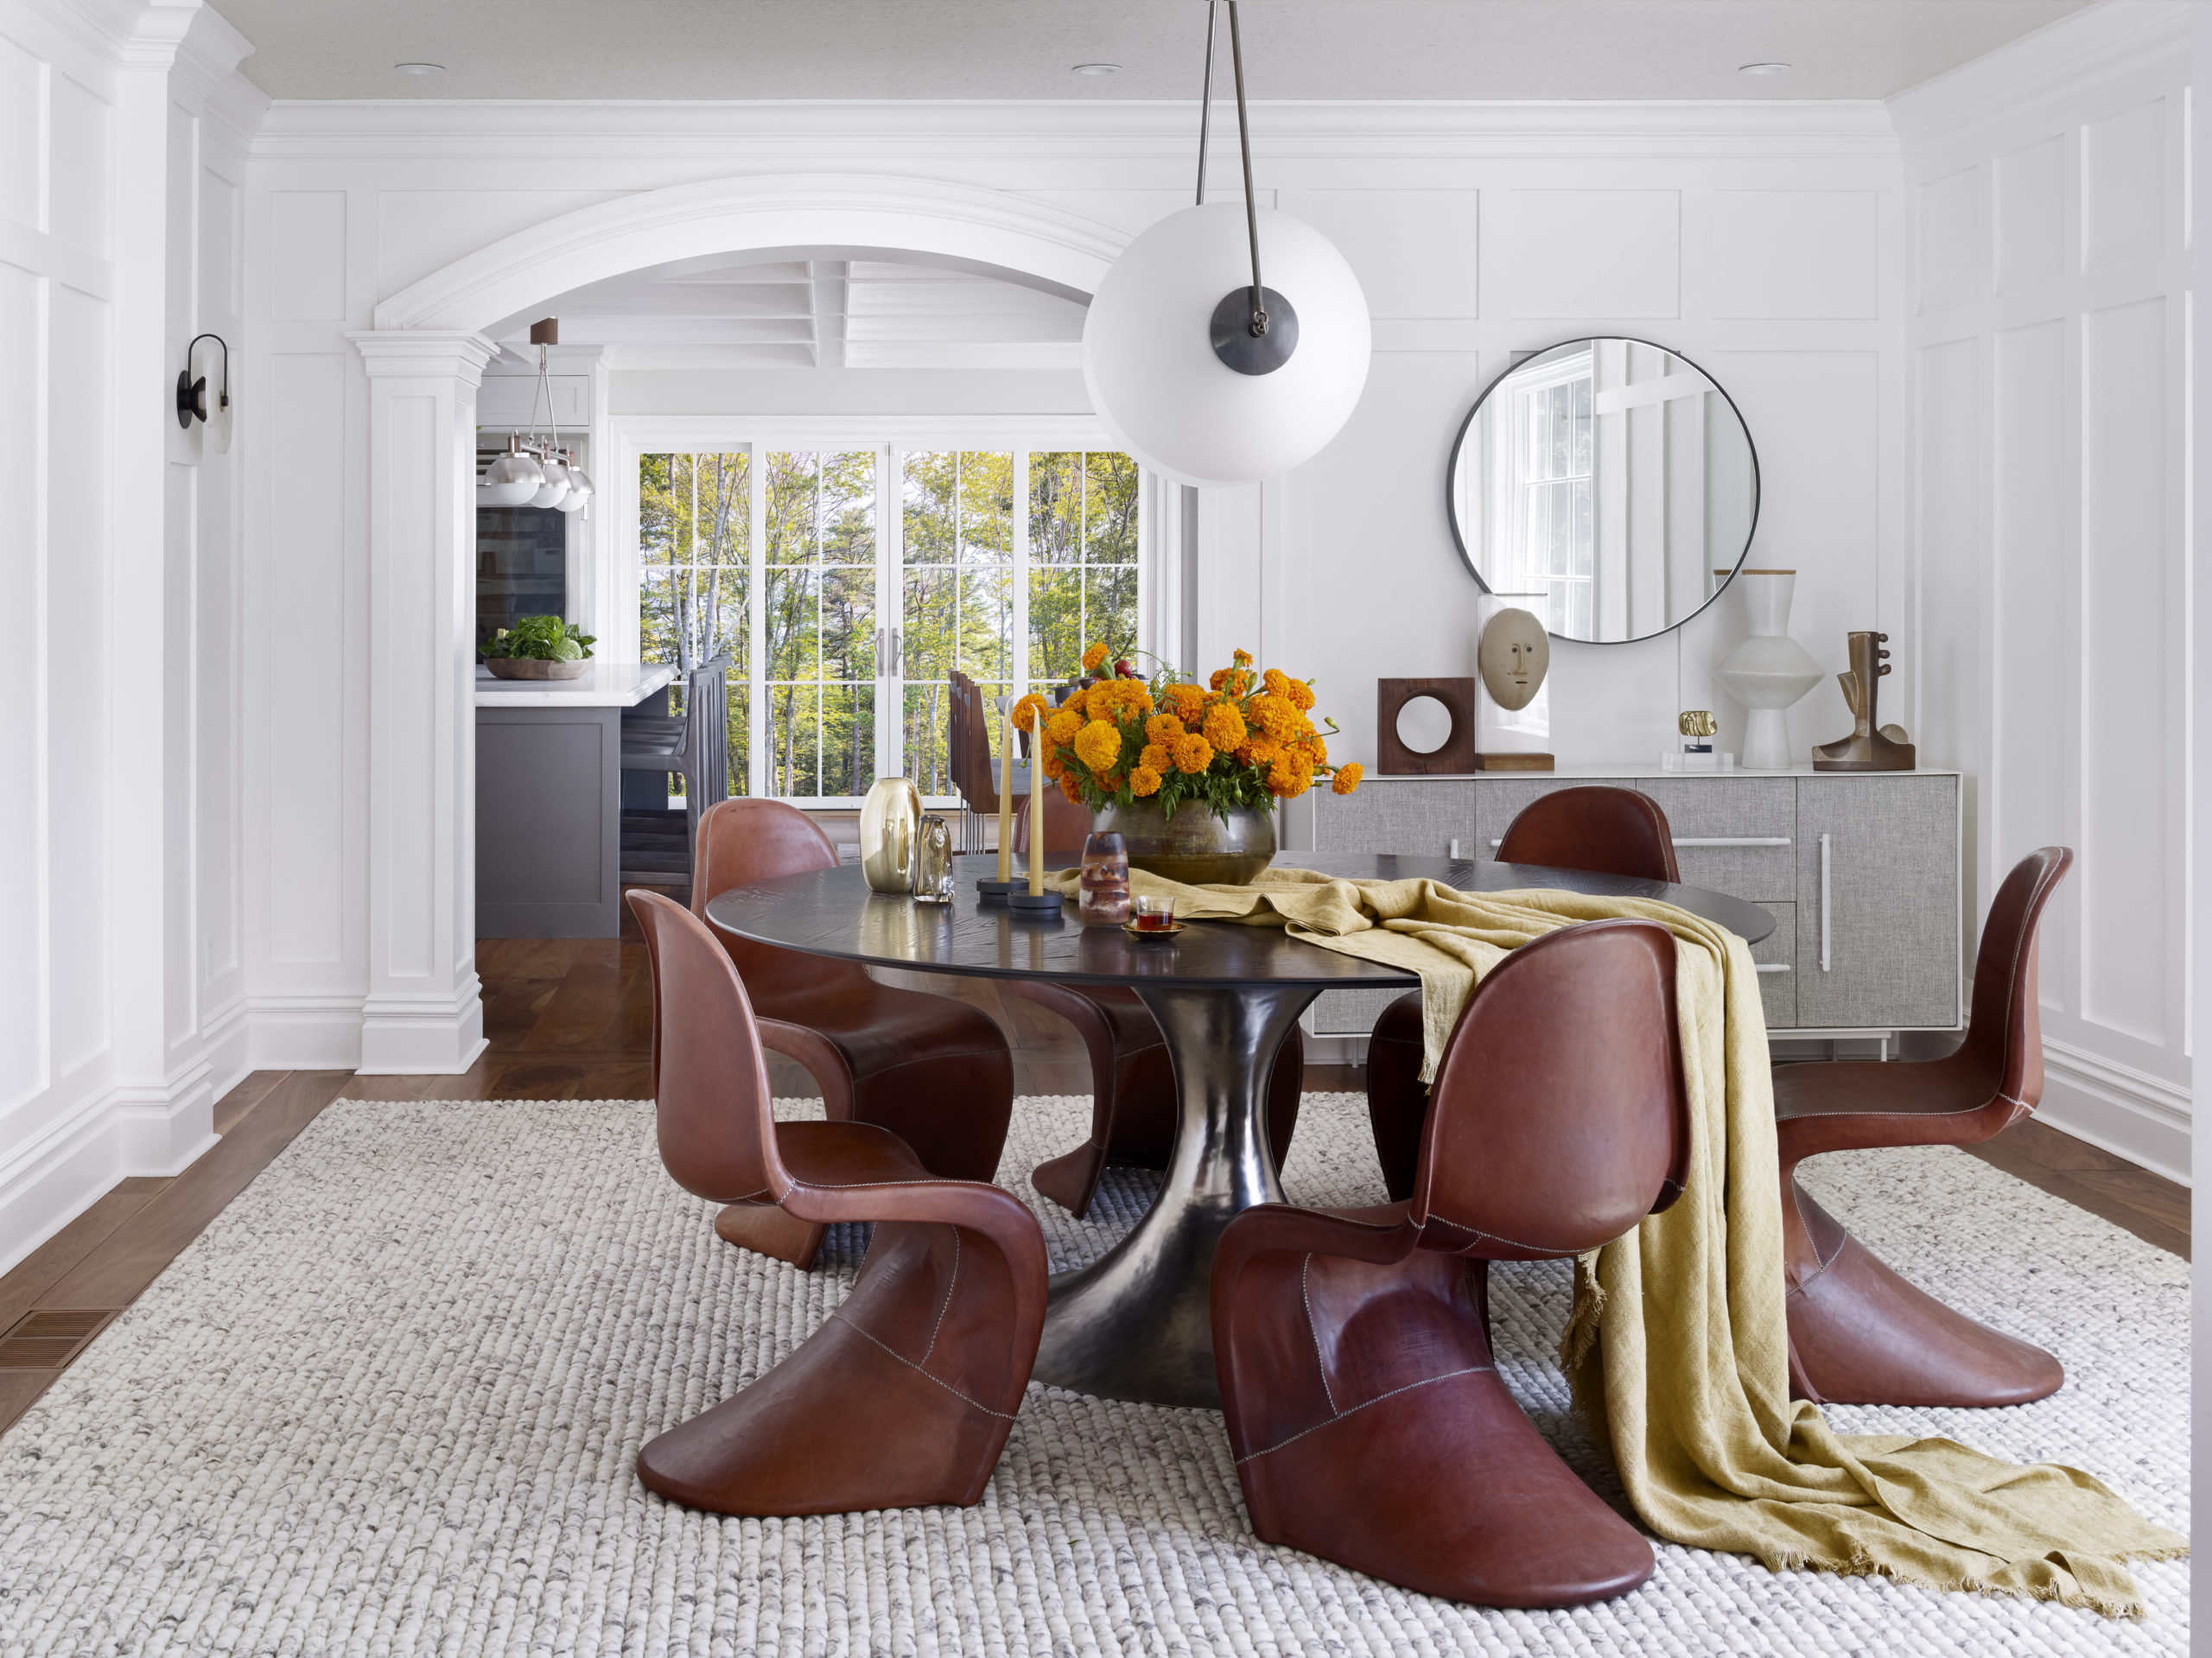 A home designed by Timothy Godbold.